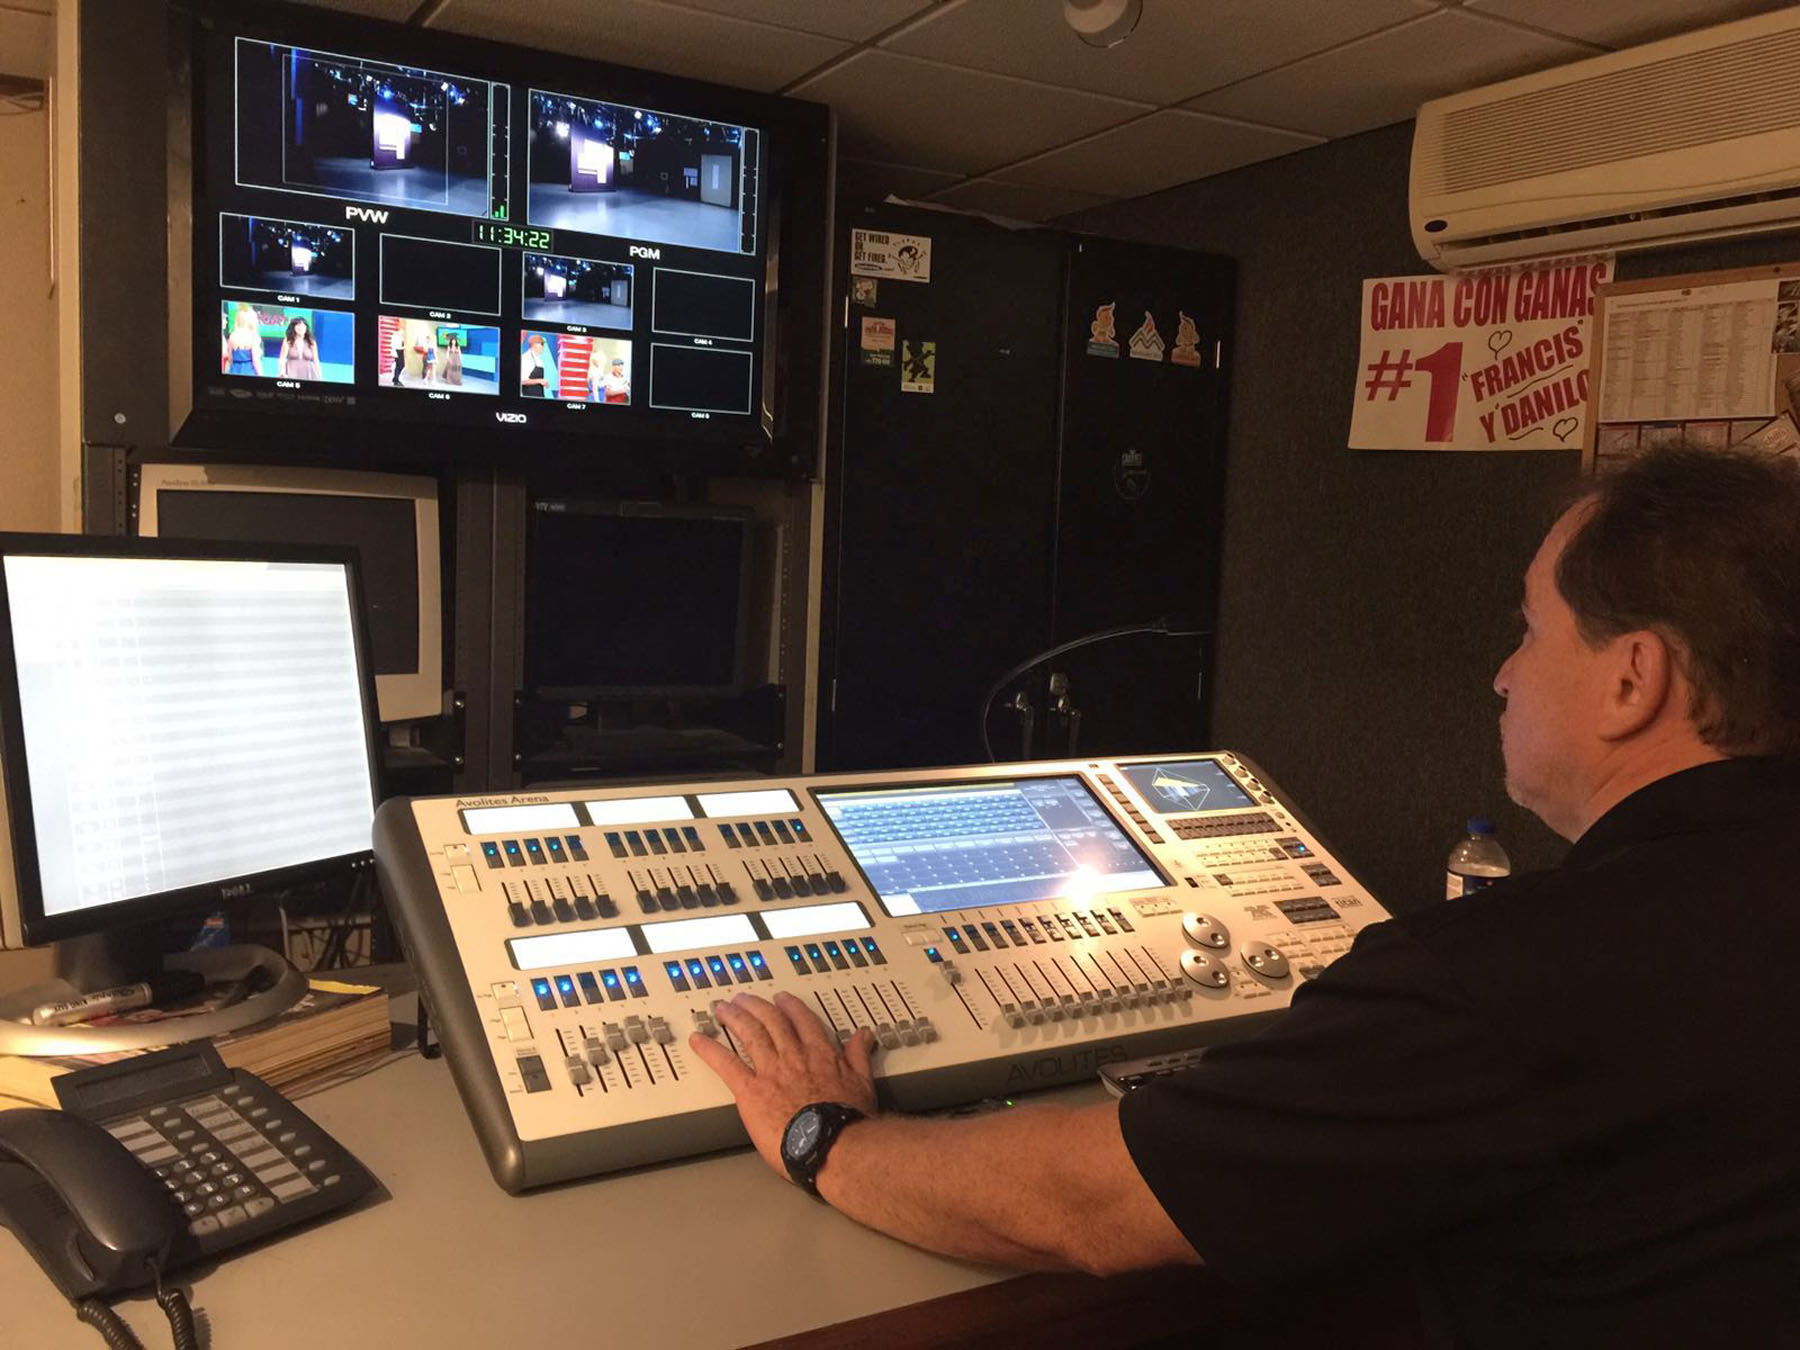 WAPA-TV's Cinema Studio Adds Avolites Arena During Full LED Upgrade